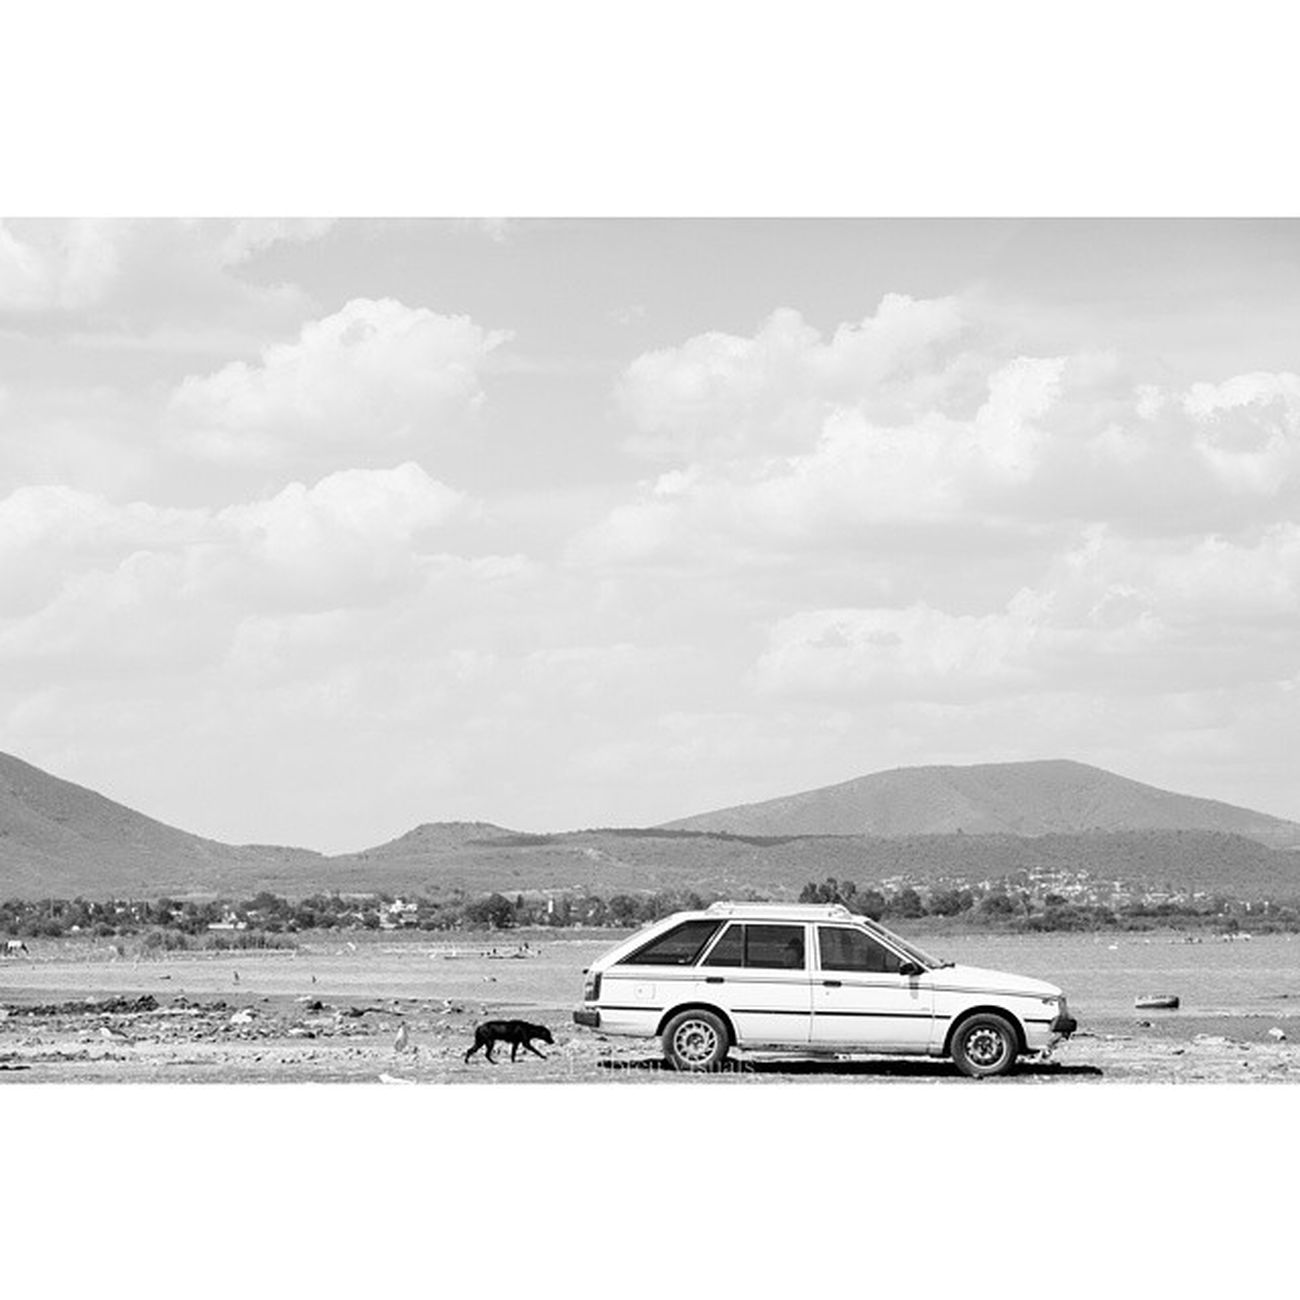 Abandoned Mexico Eabreumexico Jalisco Residency chapala photography artist mexico2014 dog car mountains